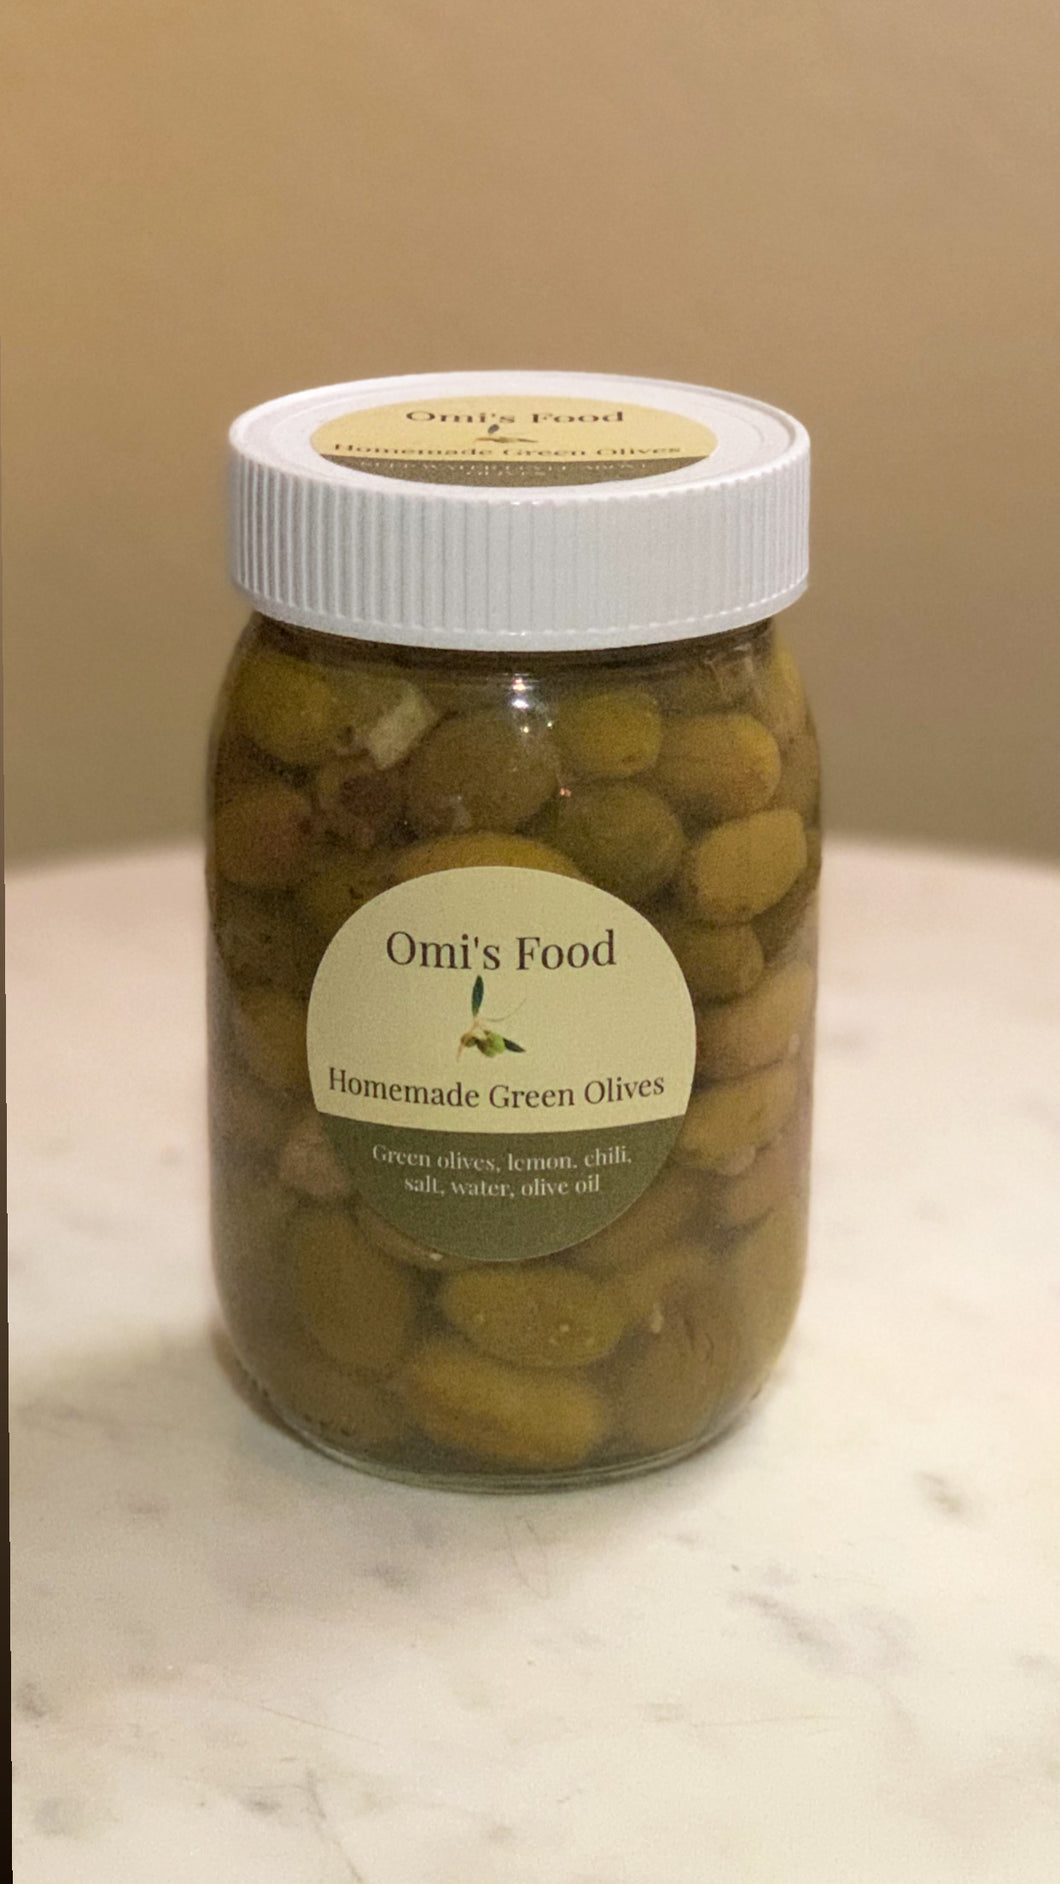 Homemade Green Olives 2020 Harvest